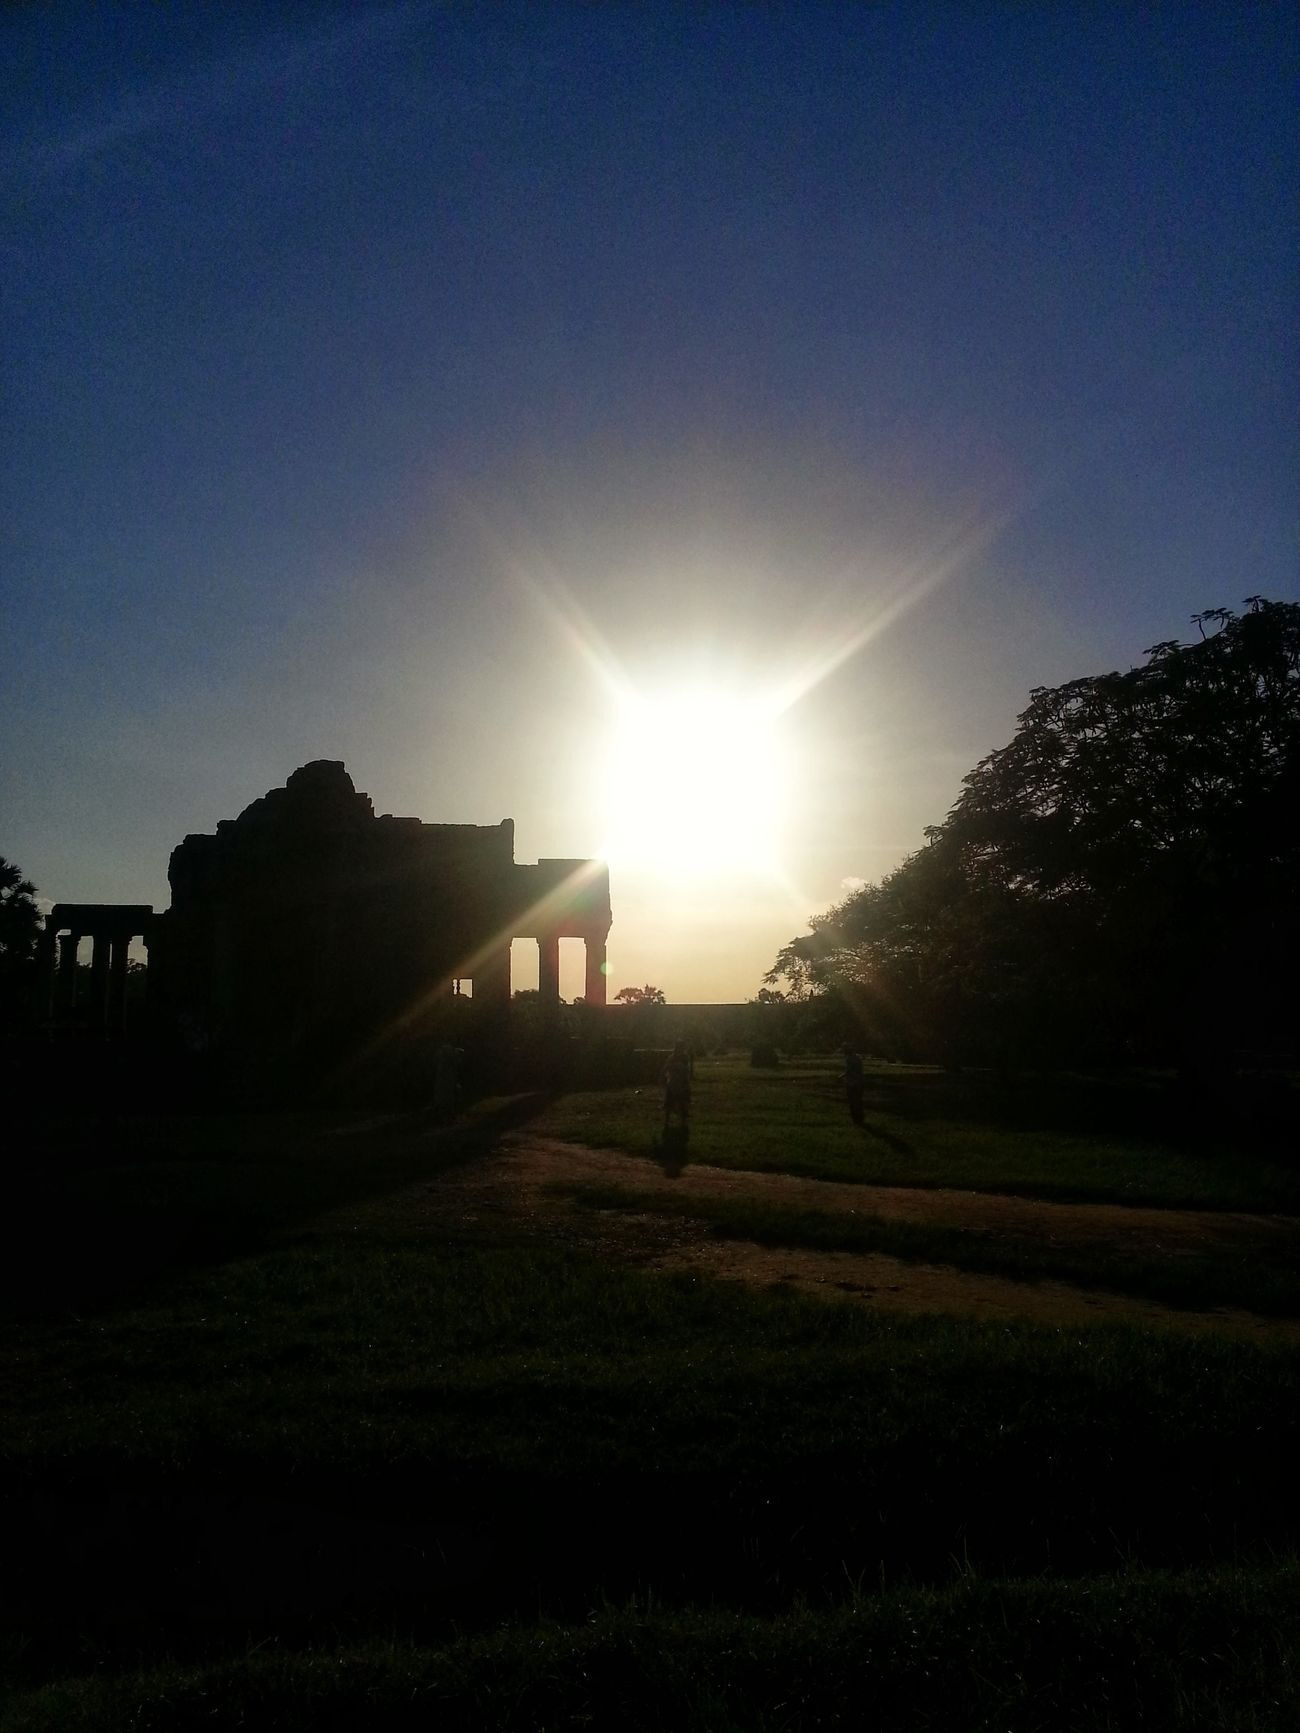 Sun Set Traveling Light And Shadow at Angor Wat Cambodia Taking Photos